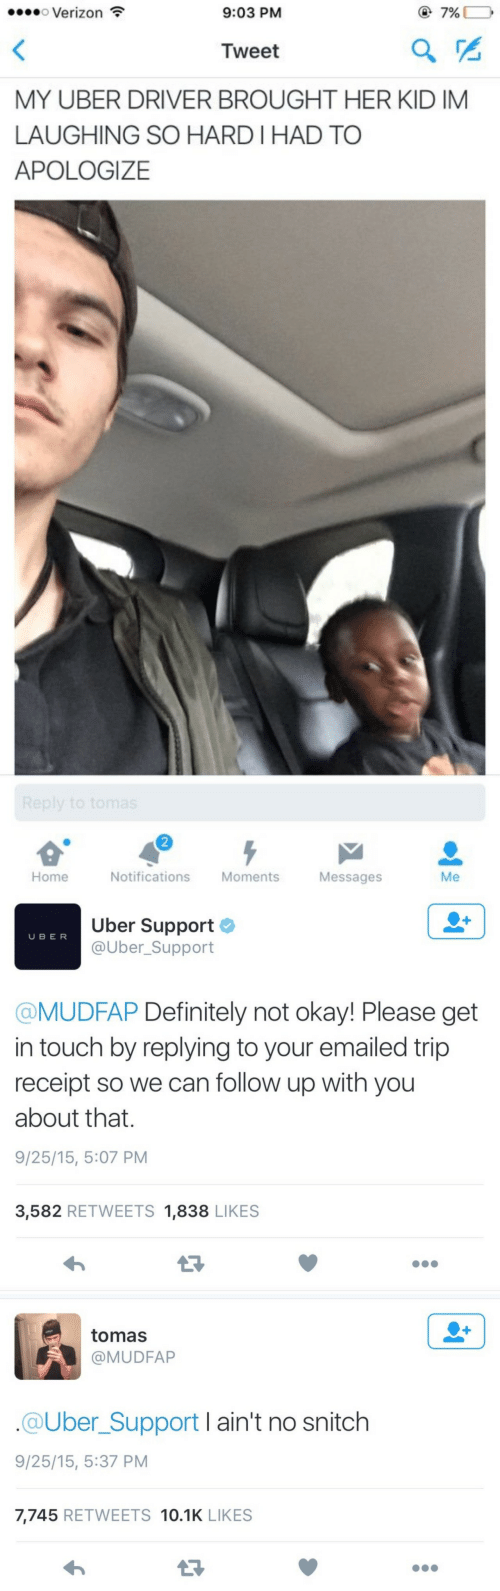 Definitely, Snitch, and Uber: o Verizon  9:03 PM  @7%  Tweet  MY UBER DRIVER BROUGHT HER KID IM  LAUGHING SO HARD I HAD TO  APOLOGIZE  2  Home  Notifications Moments  Messages  Me   Uber Support  @Uber_Support  U BER  @MUDFAP Definitely not okay! Please get  in touch by replying to your emailed trip  receipt so we can follow up with you  about that.  9/25/15, 5:07 PM  3,582 RETWEETS 1,838 LIKES   tomas  @MUDFAP  @Uber_Support I ain't no snitch  9/25/15, 5:37 PM  7,745 RETWEETS 10.1K LIKES  13